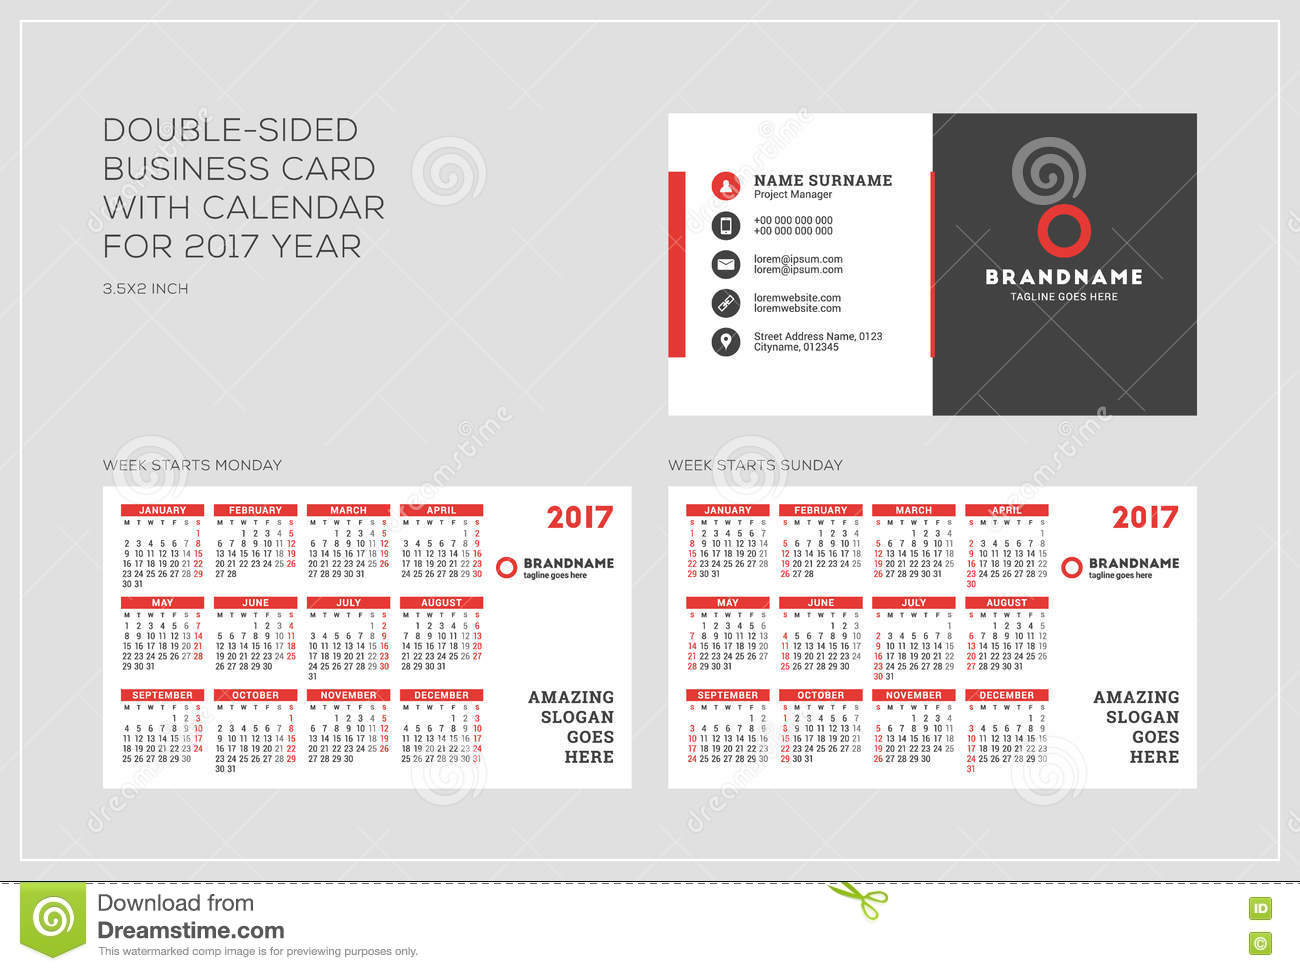 Doublesided Business Card Template With Calendar For Year - Two sided business card template